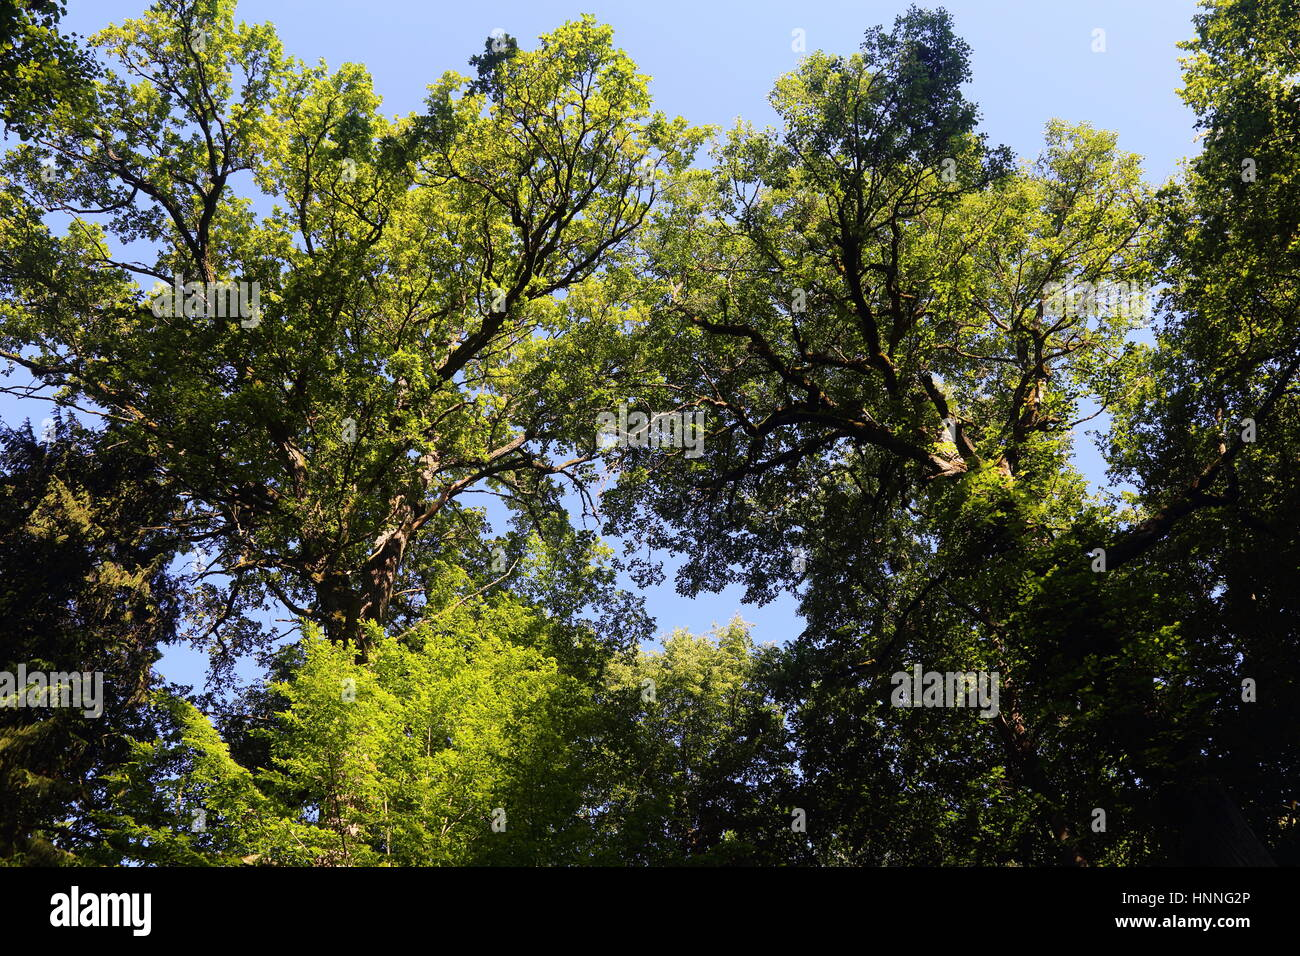 Trees in Bialowieza National Park - Stock Image